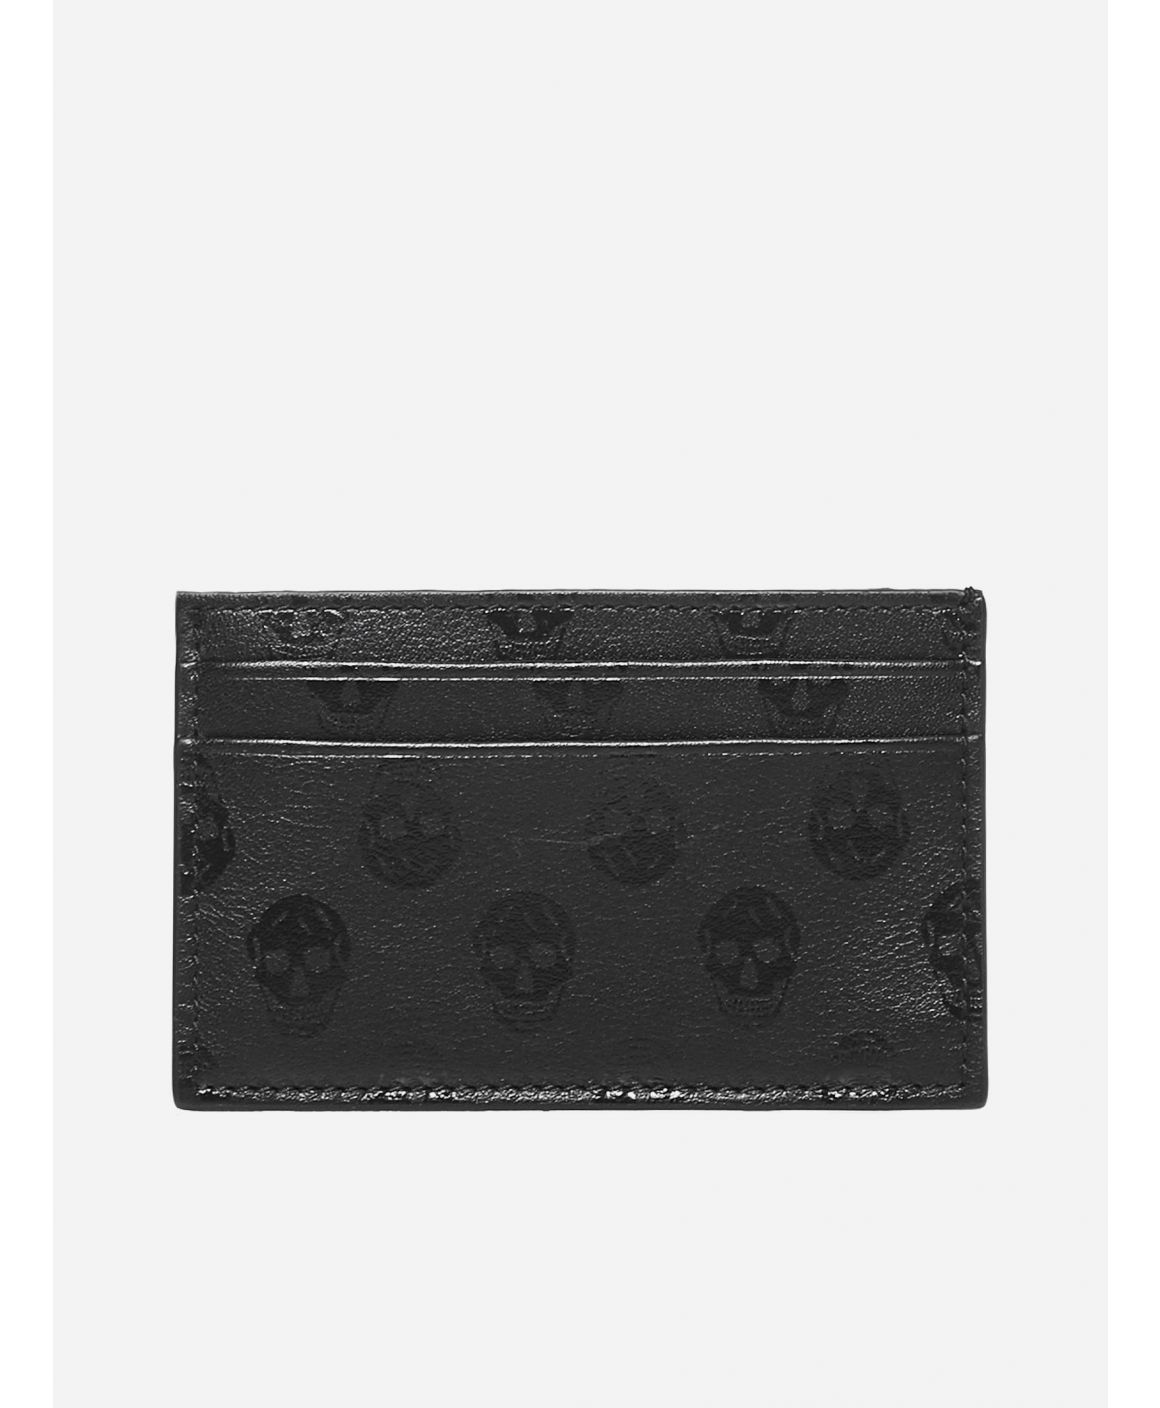 Skull-motif leather card holder